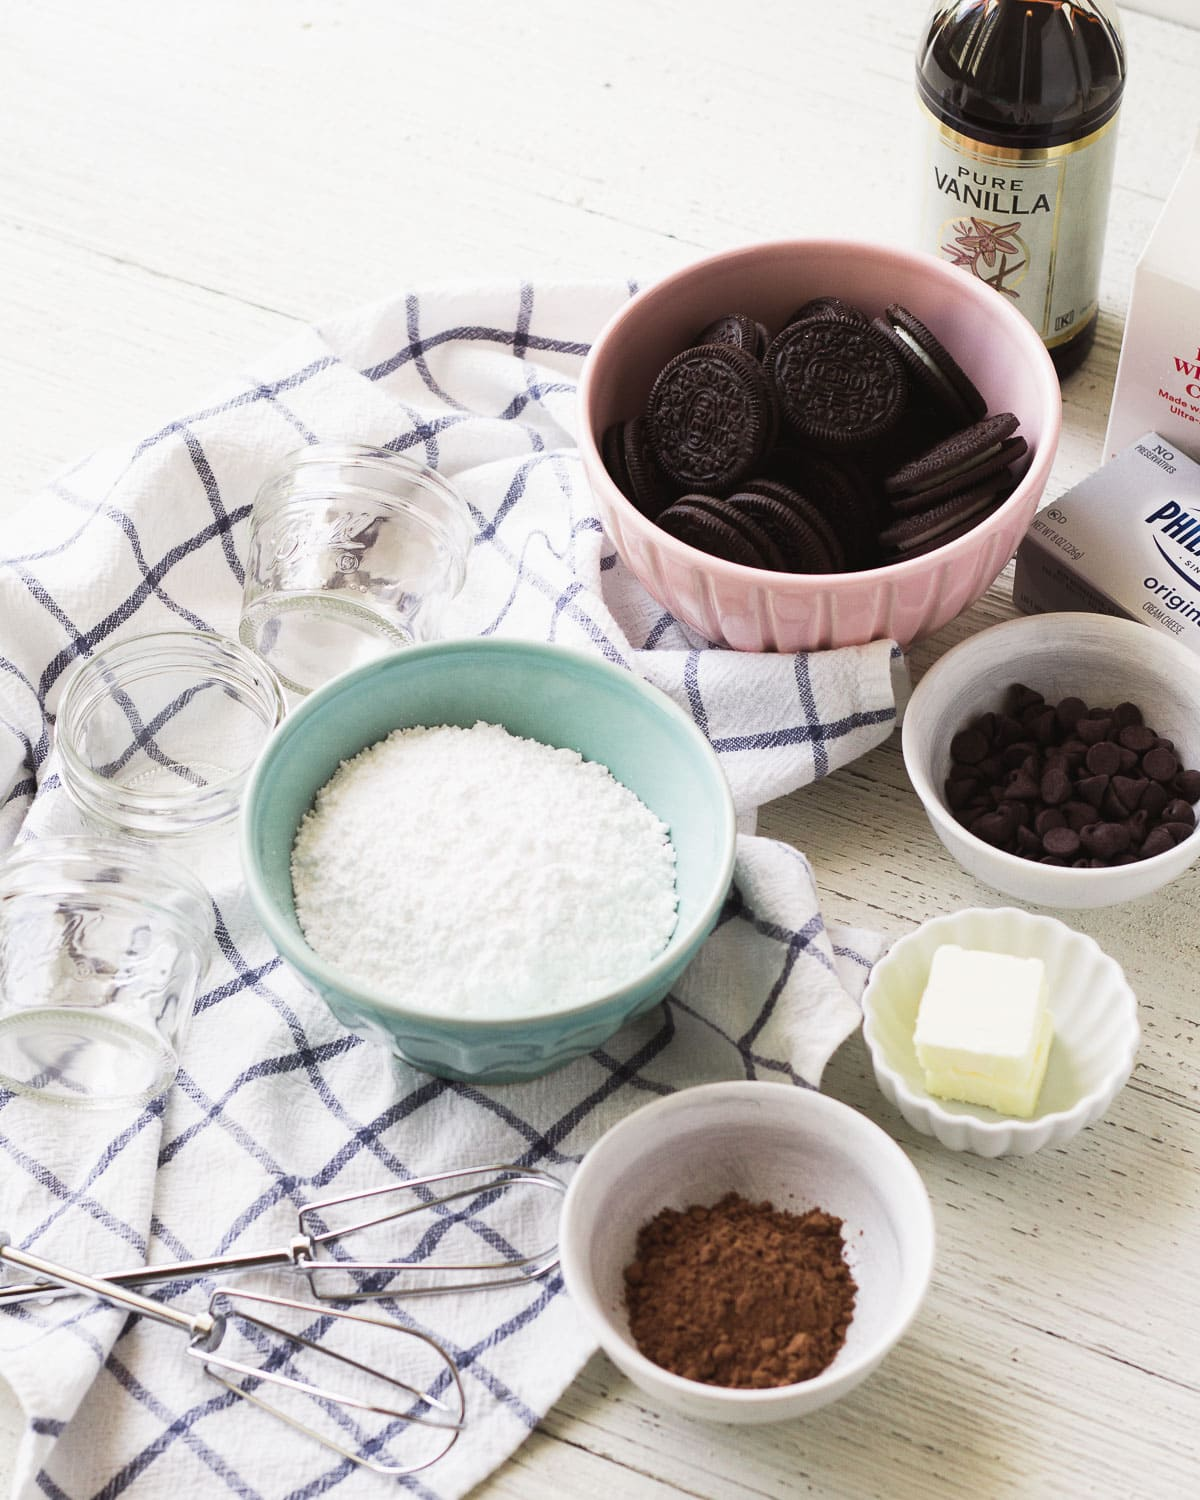 Bowls filled with various ingredients: chocolate sandwich cookies, cocoa powder, butter, and powdered sugar and more.